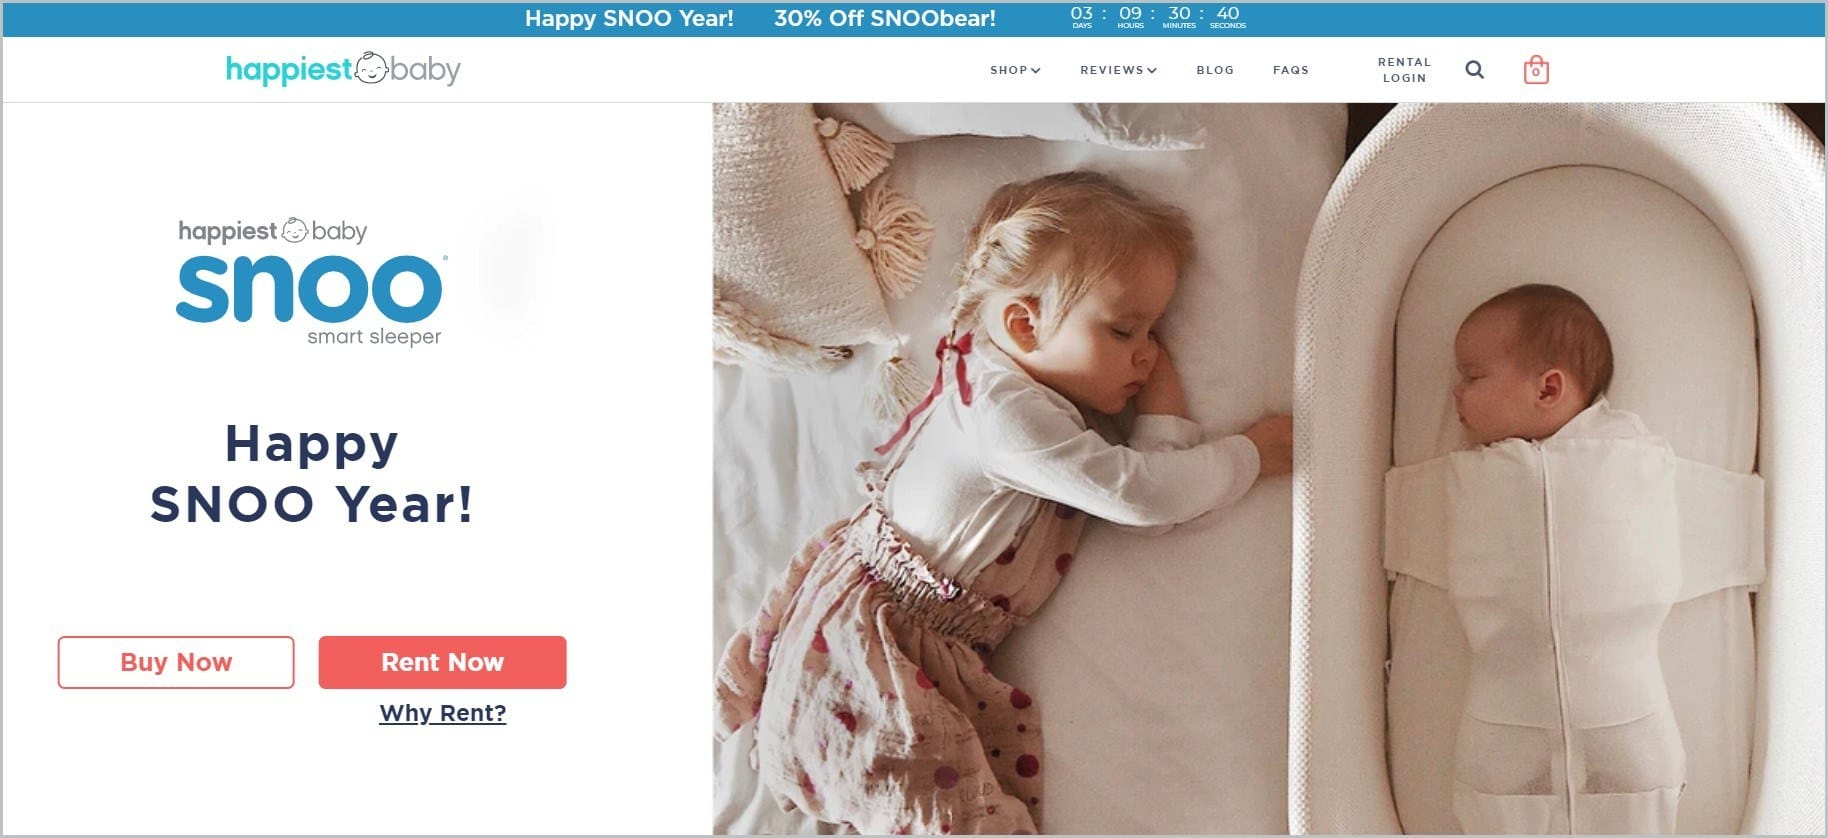 screenshot of Happiest Baby homepage with a sleeping toddler and baby as main featured image, with white header with the website's name and main navigation menu